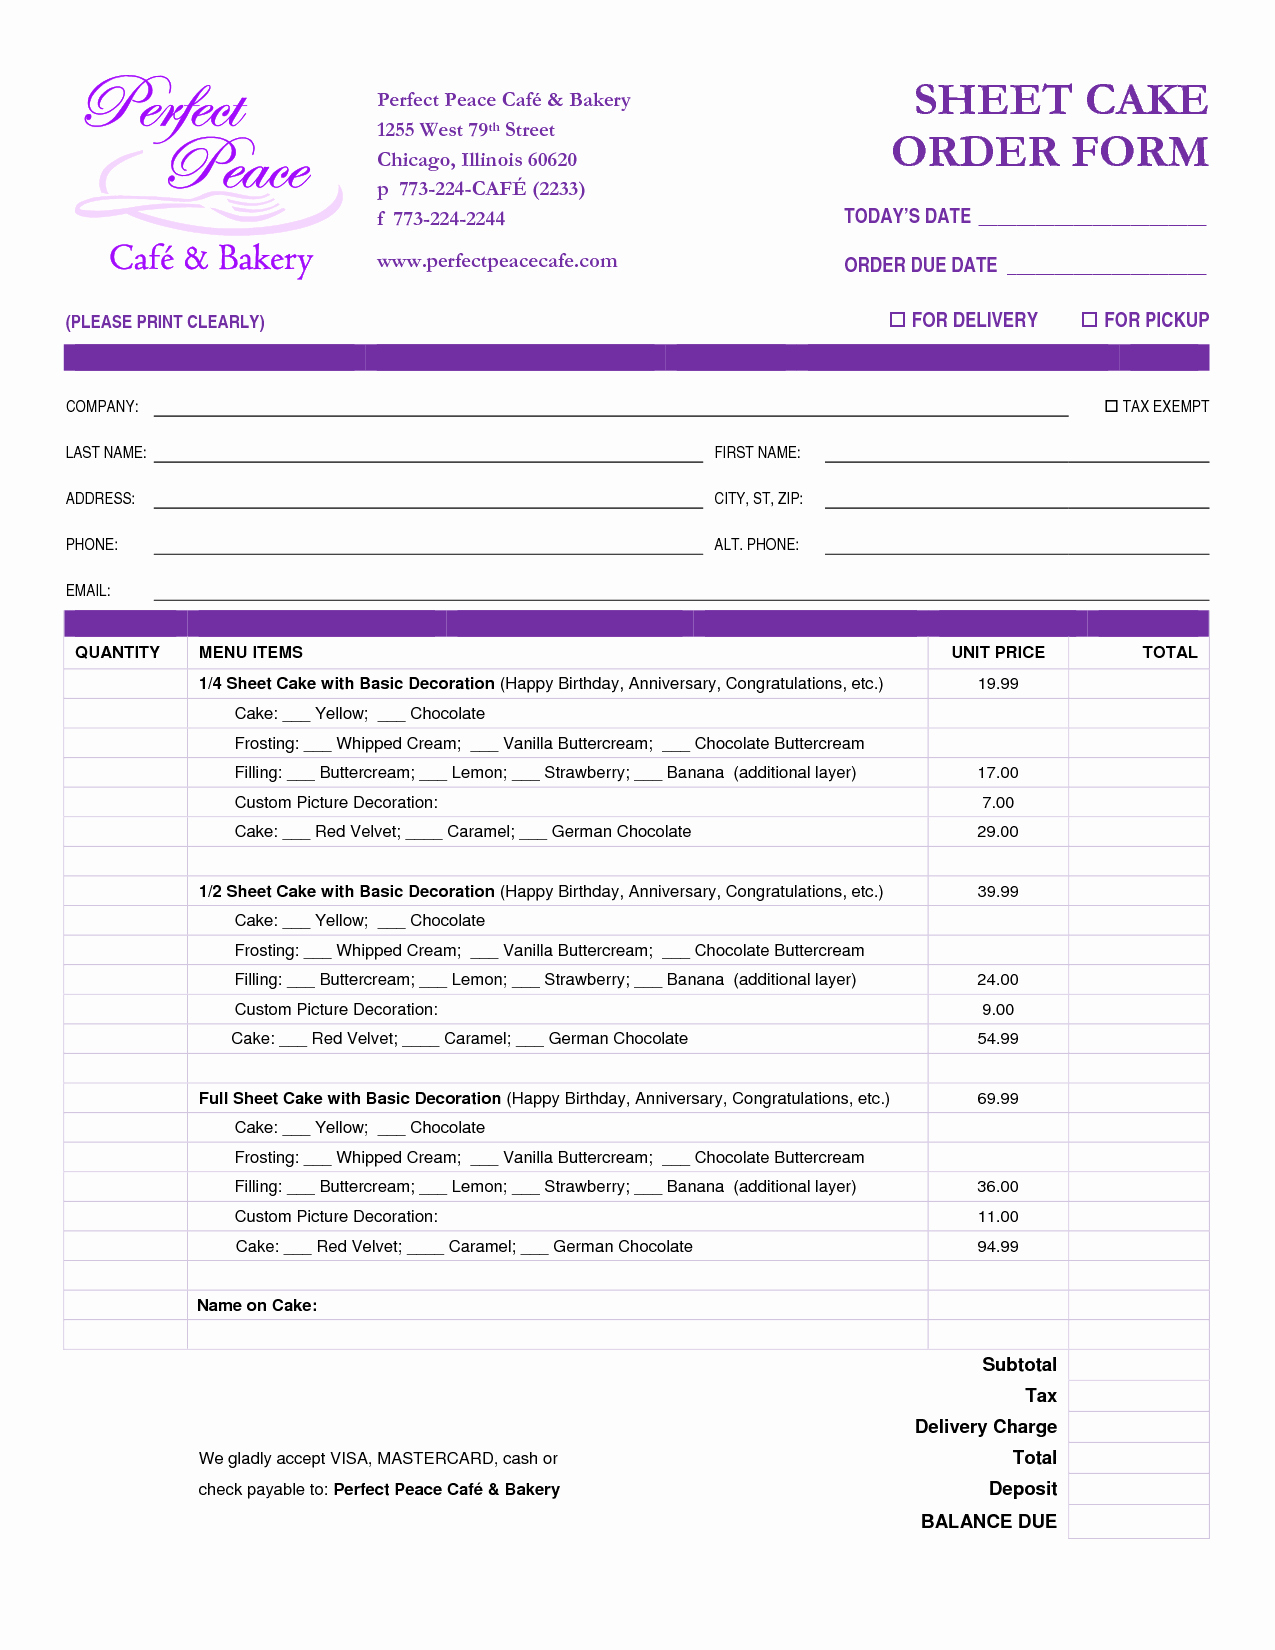 Cake order forms Templates Awesome Cake order form Template Free Google Search